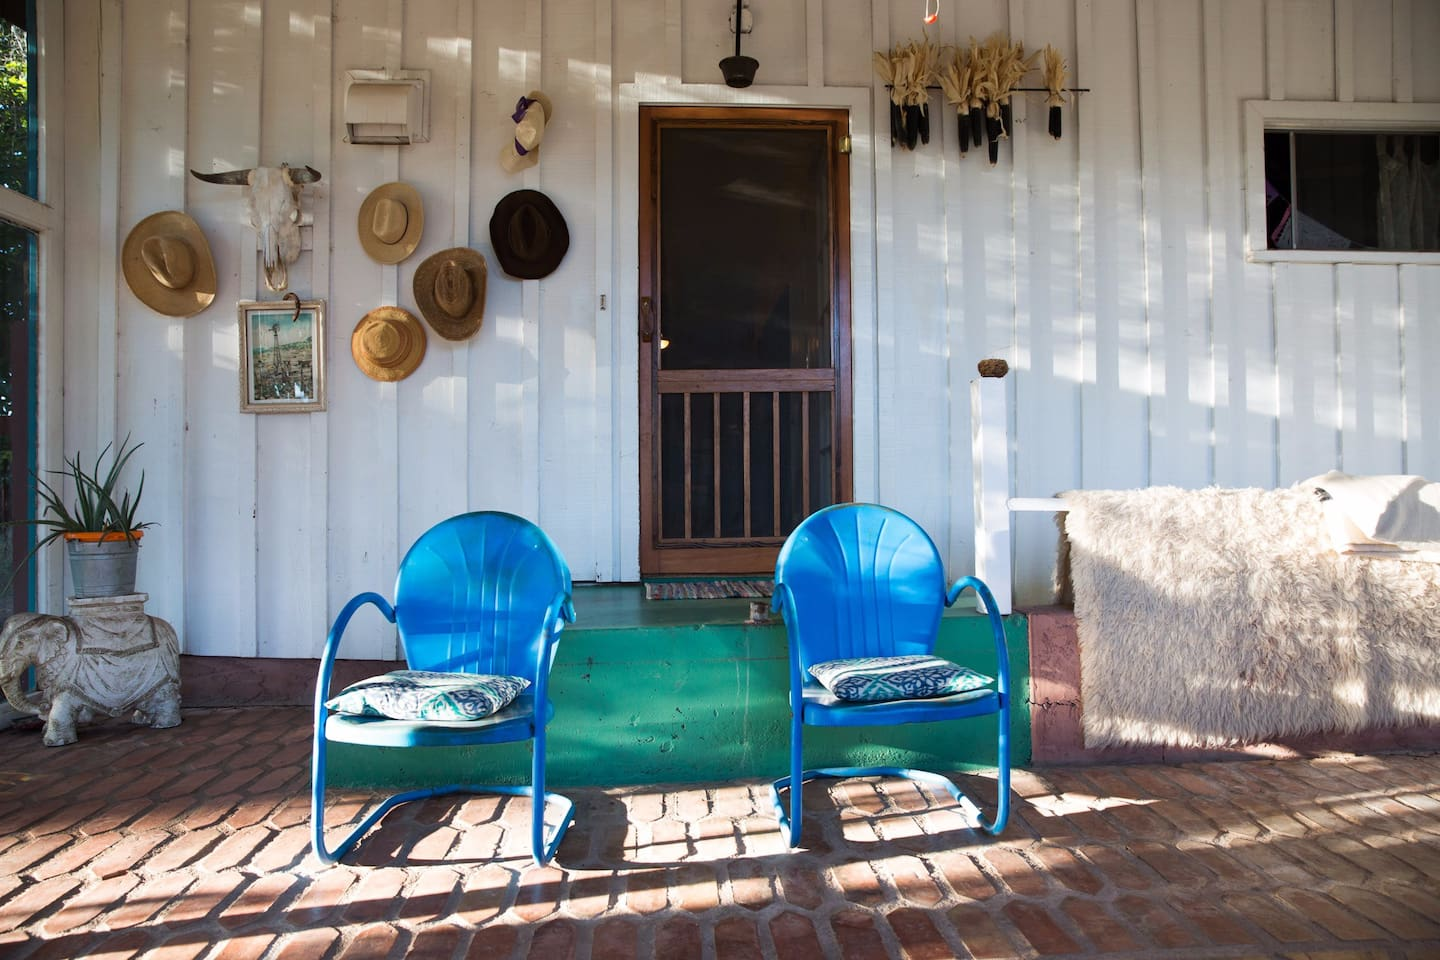 Artist home in wine country. Near creek & trees - Houses for Rent in ...